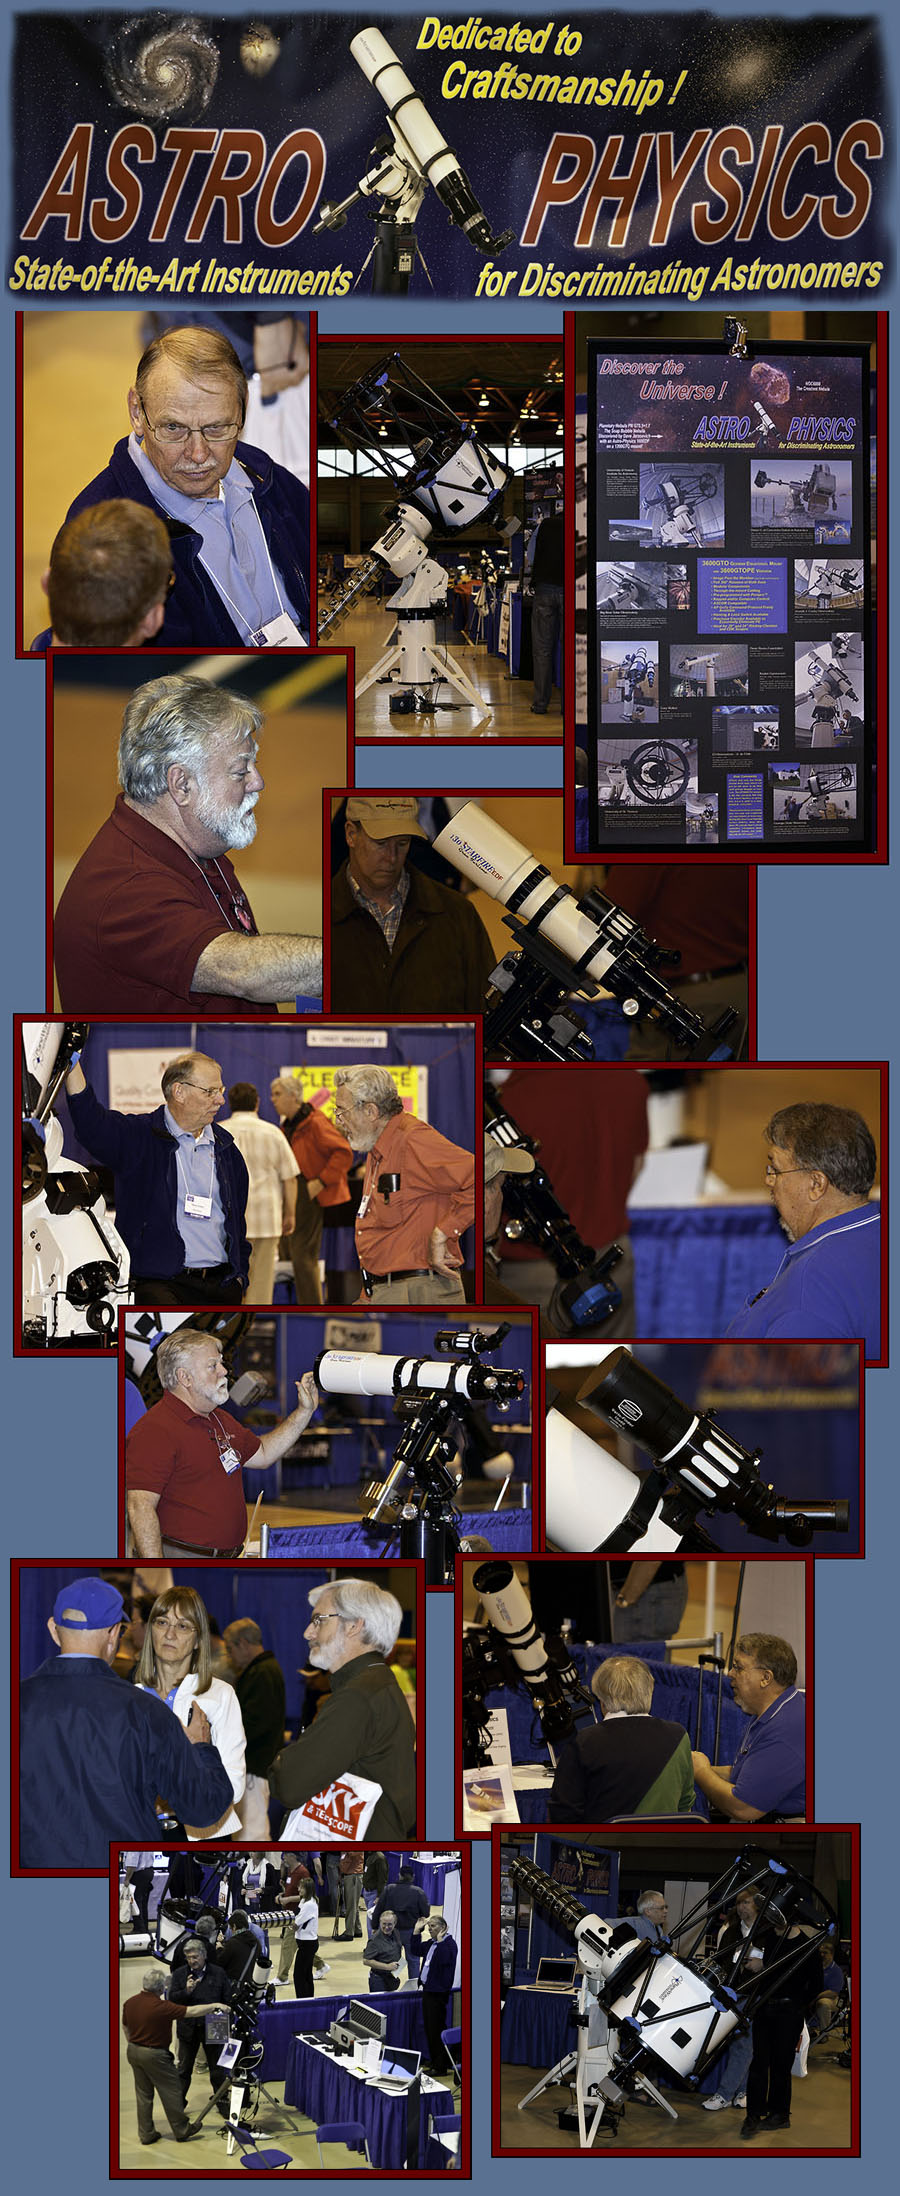 Around the Astro-Physics Display - NEAF 2011